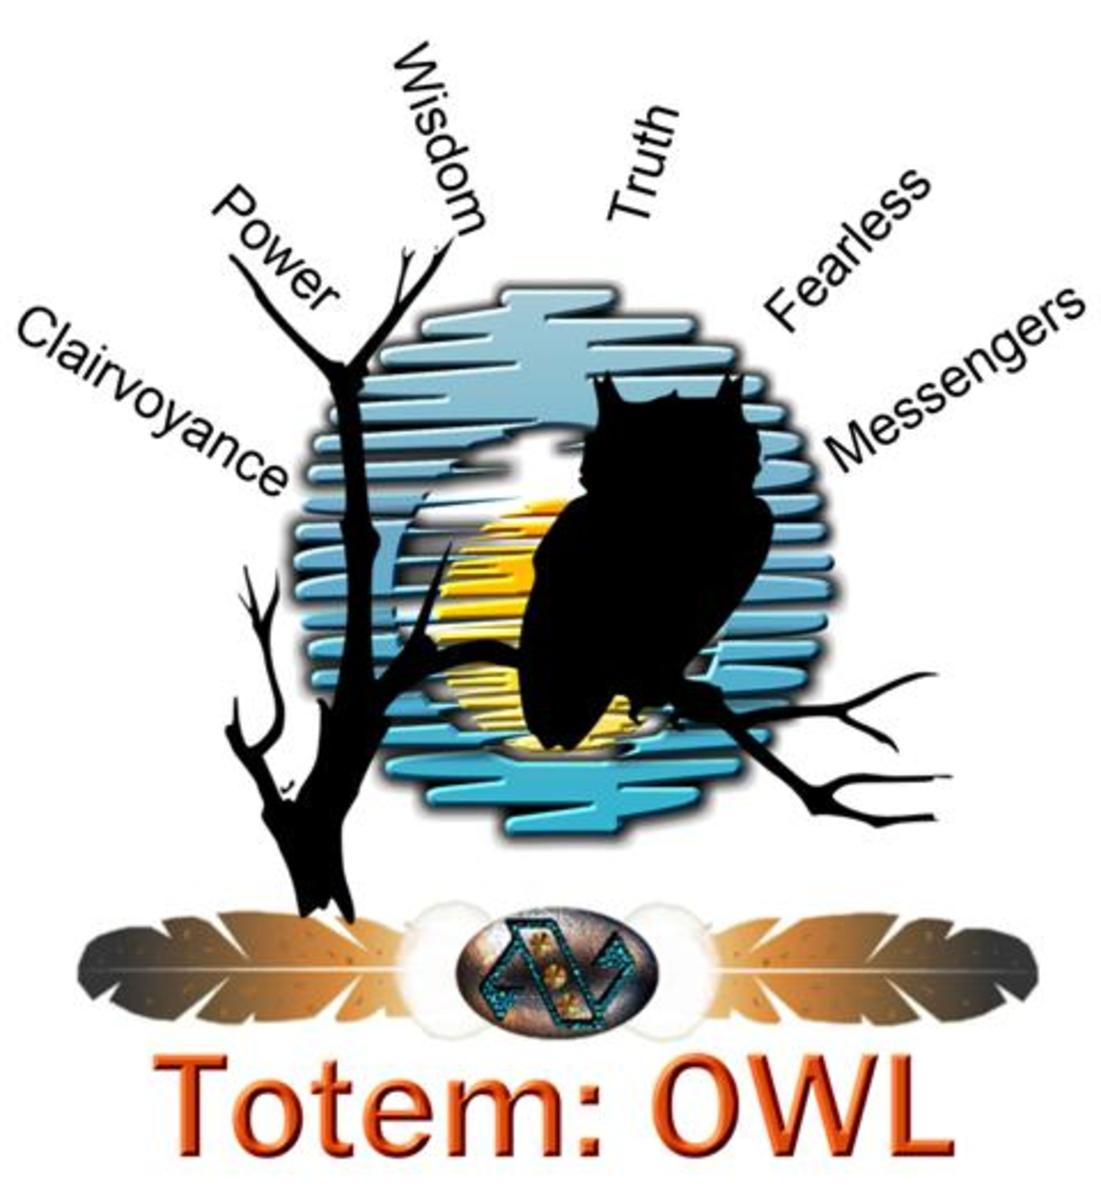 owl-truth-power-and-wisdom